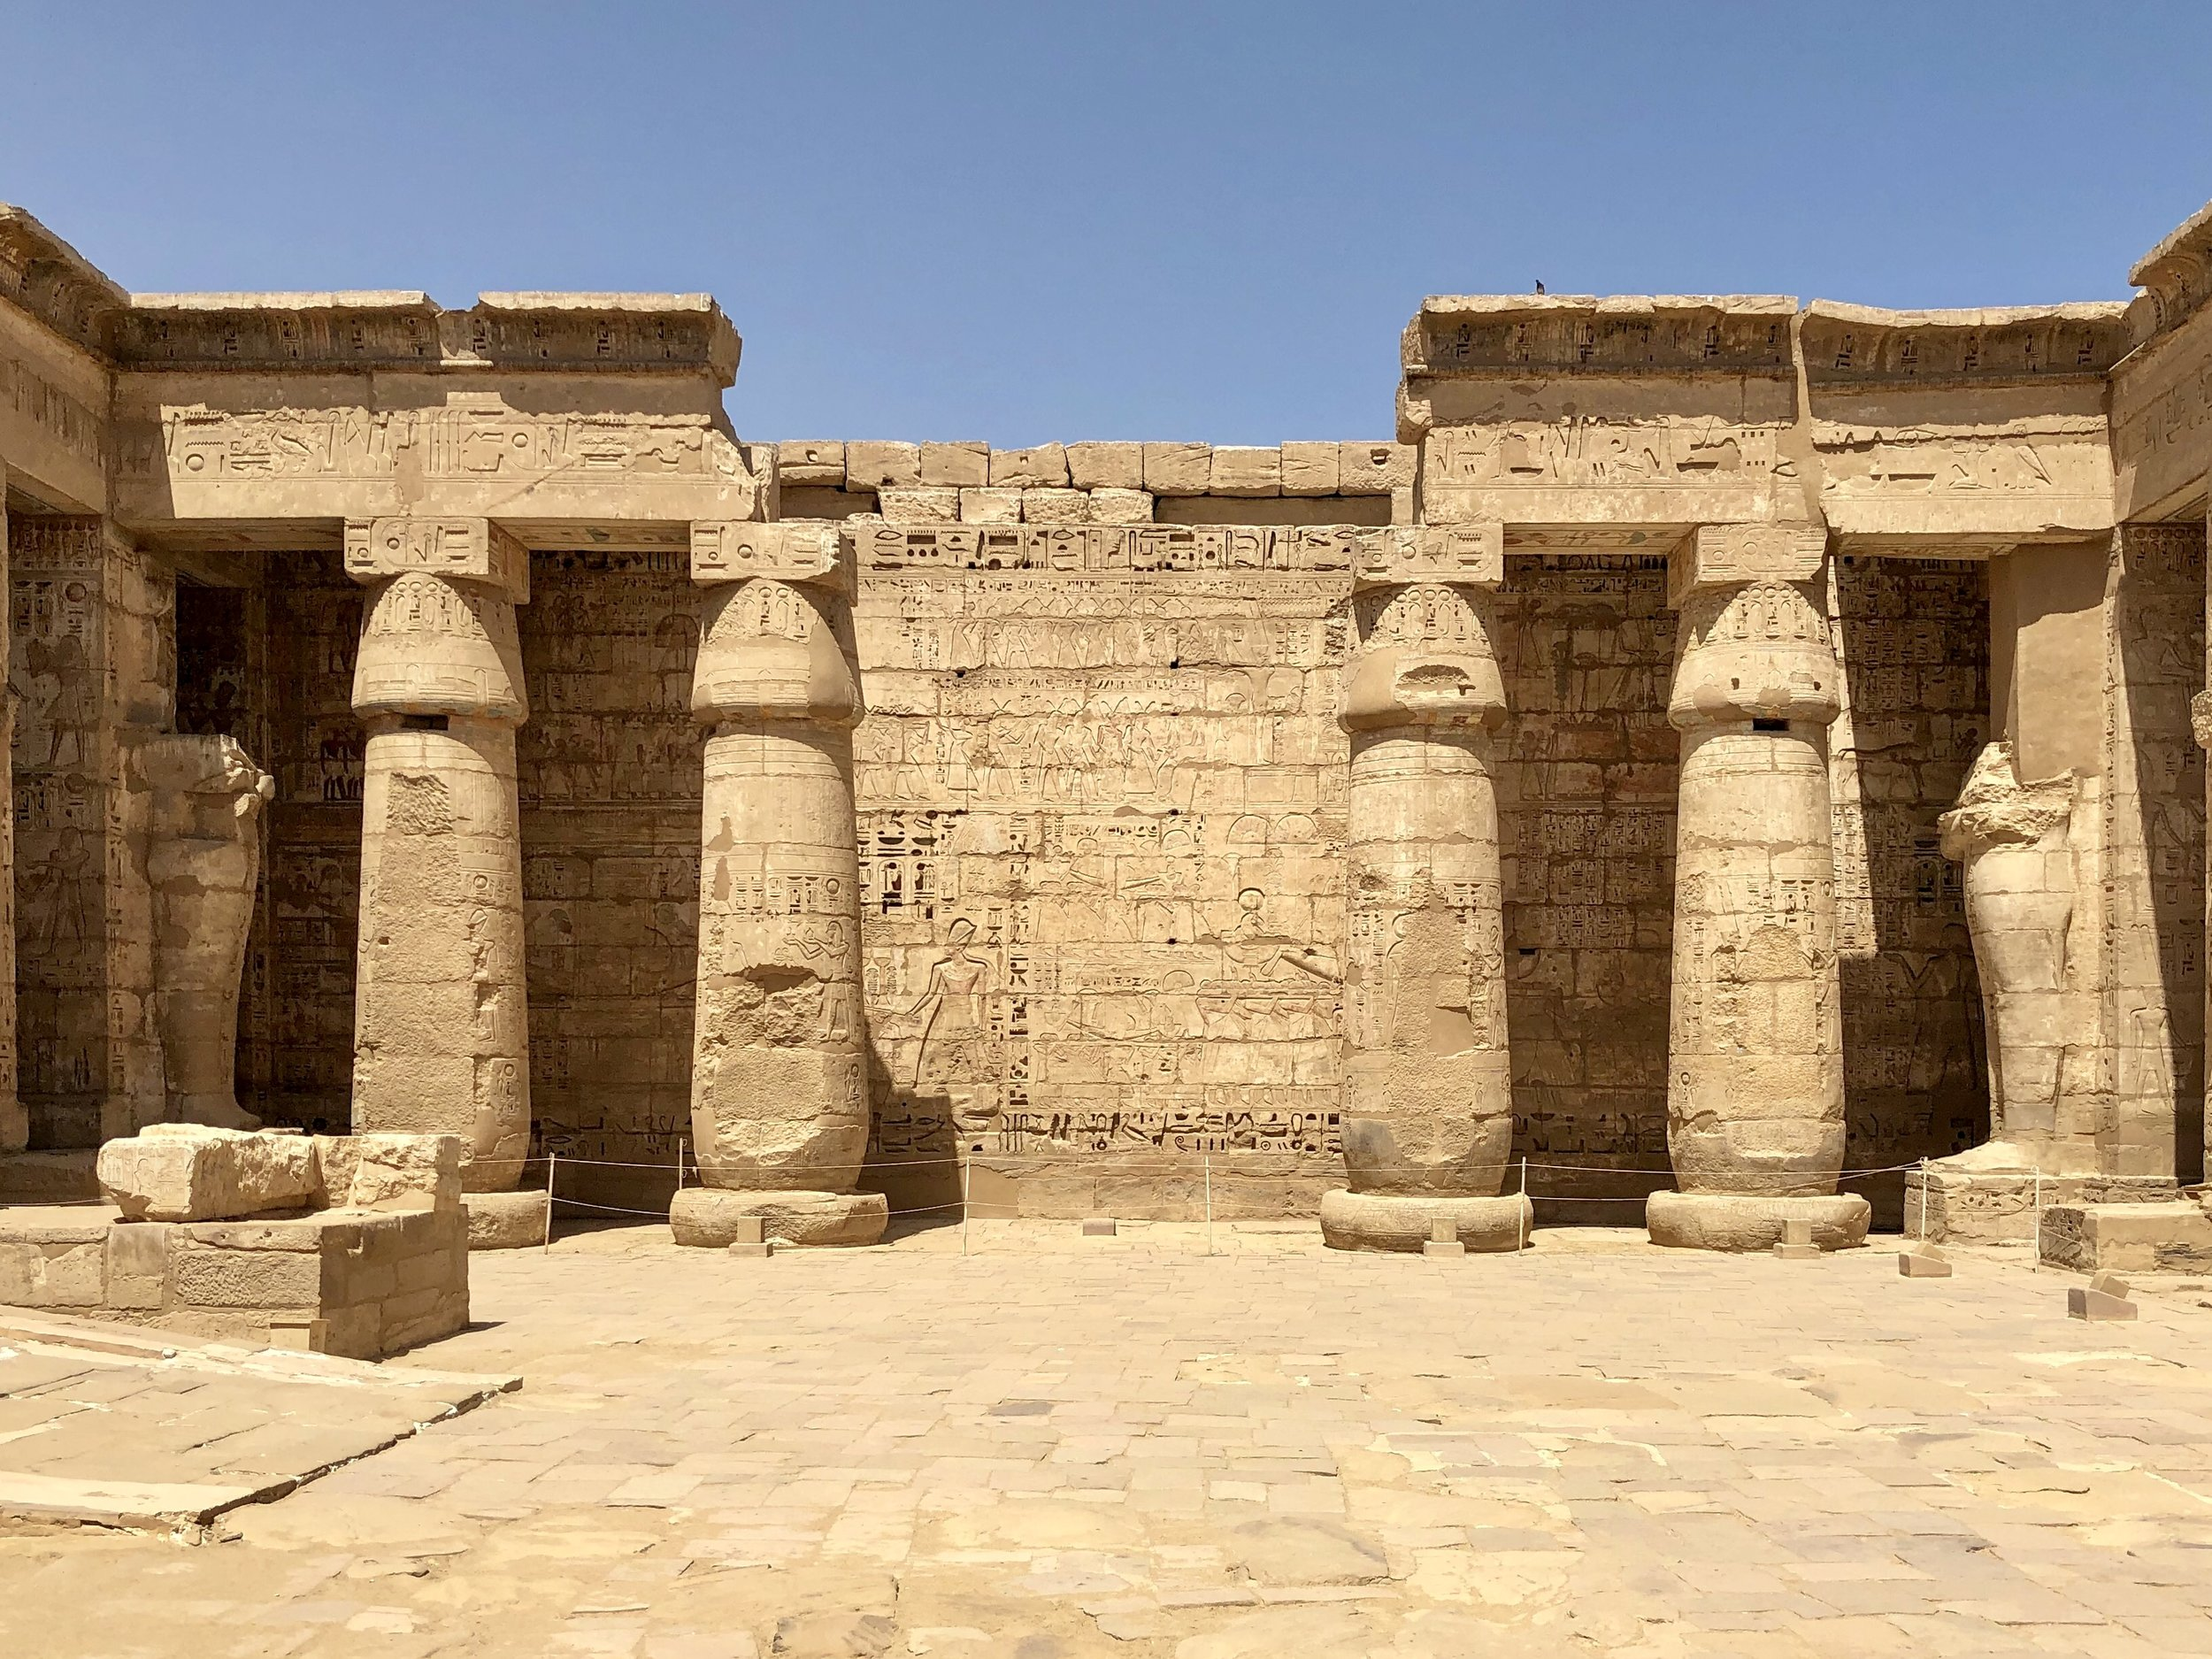 Like many other Ancient Egyptian temples, you proceed through a series of courtyards